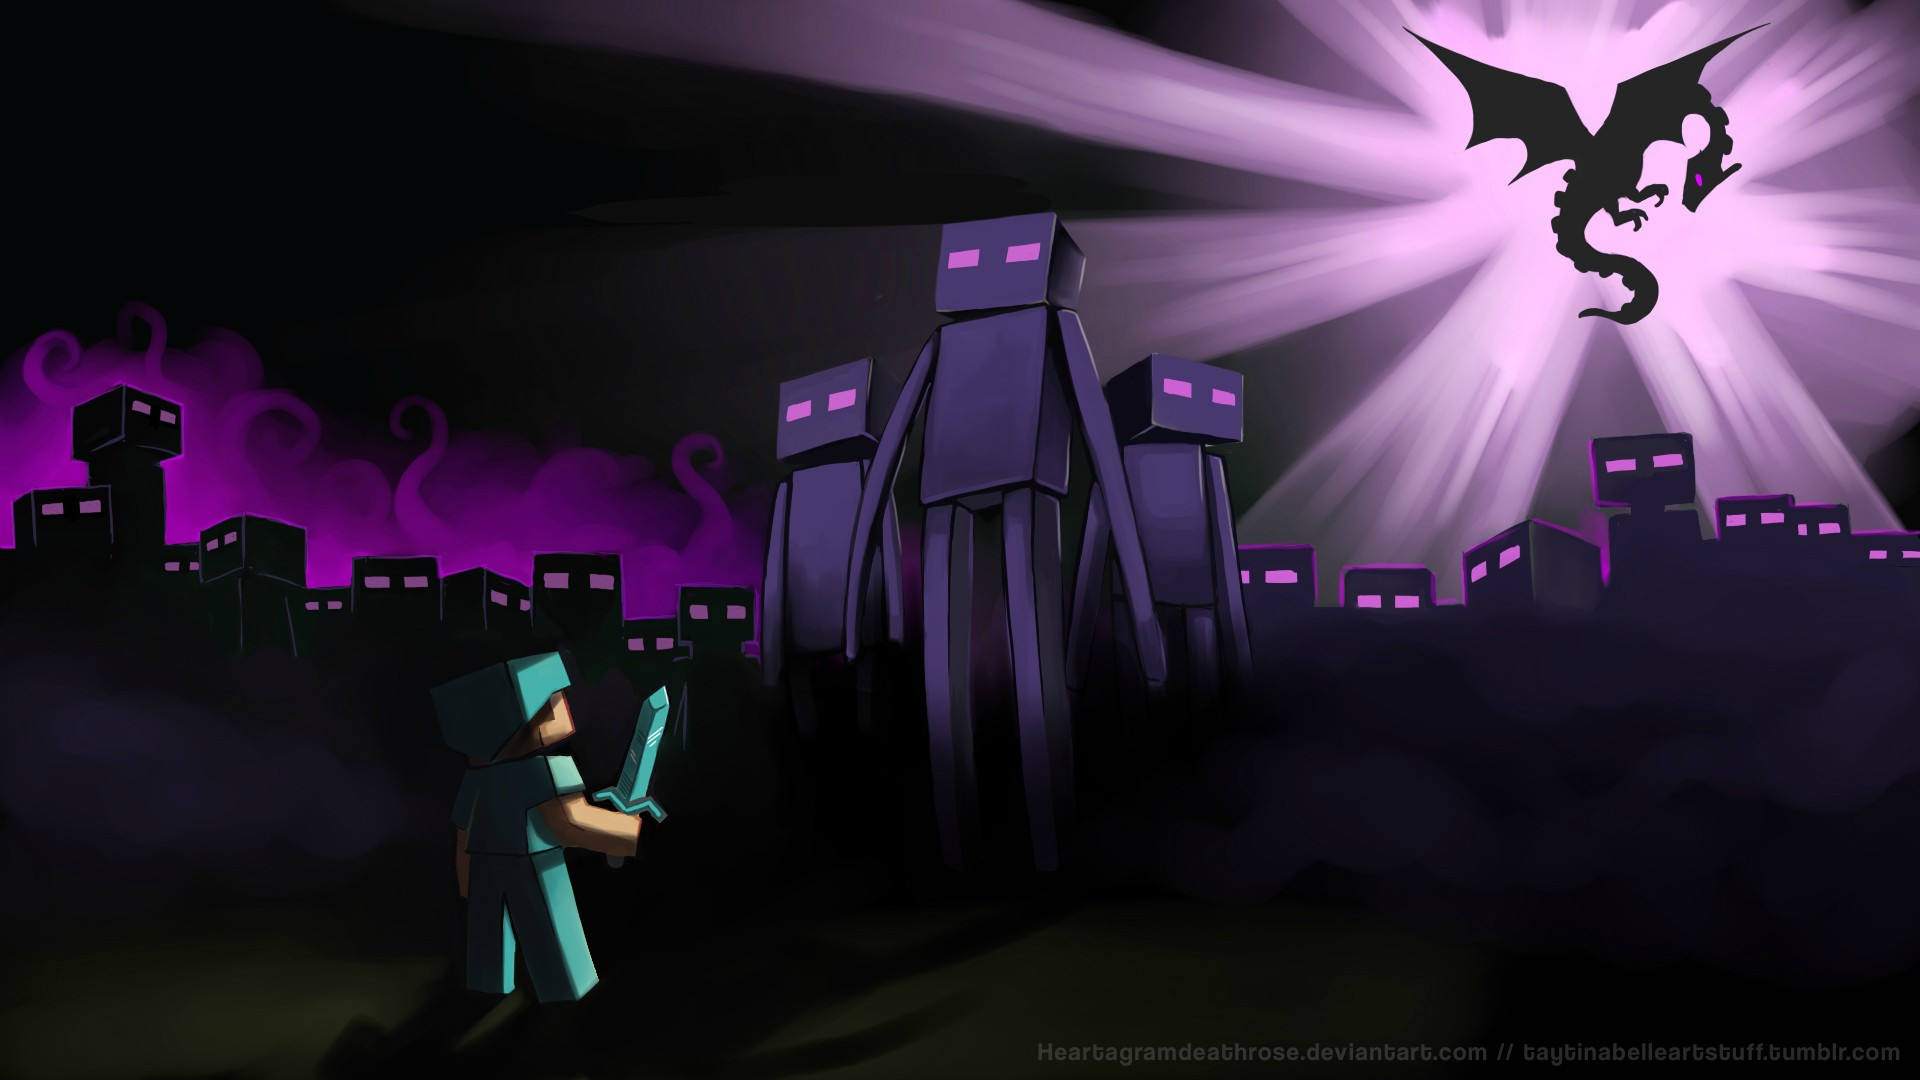 Minecraft Purple Dragon wallpaper background 1920x1080